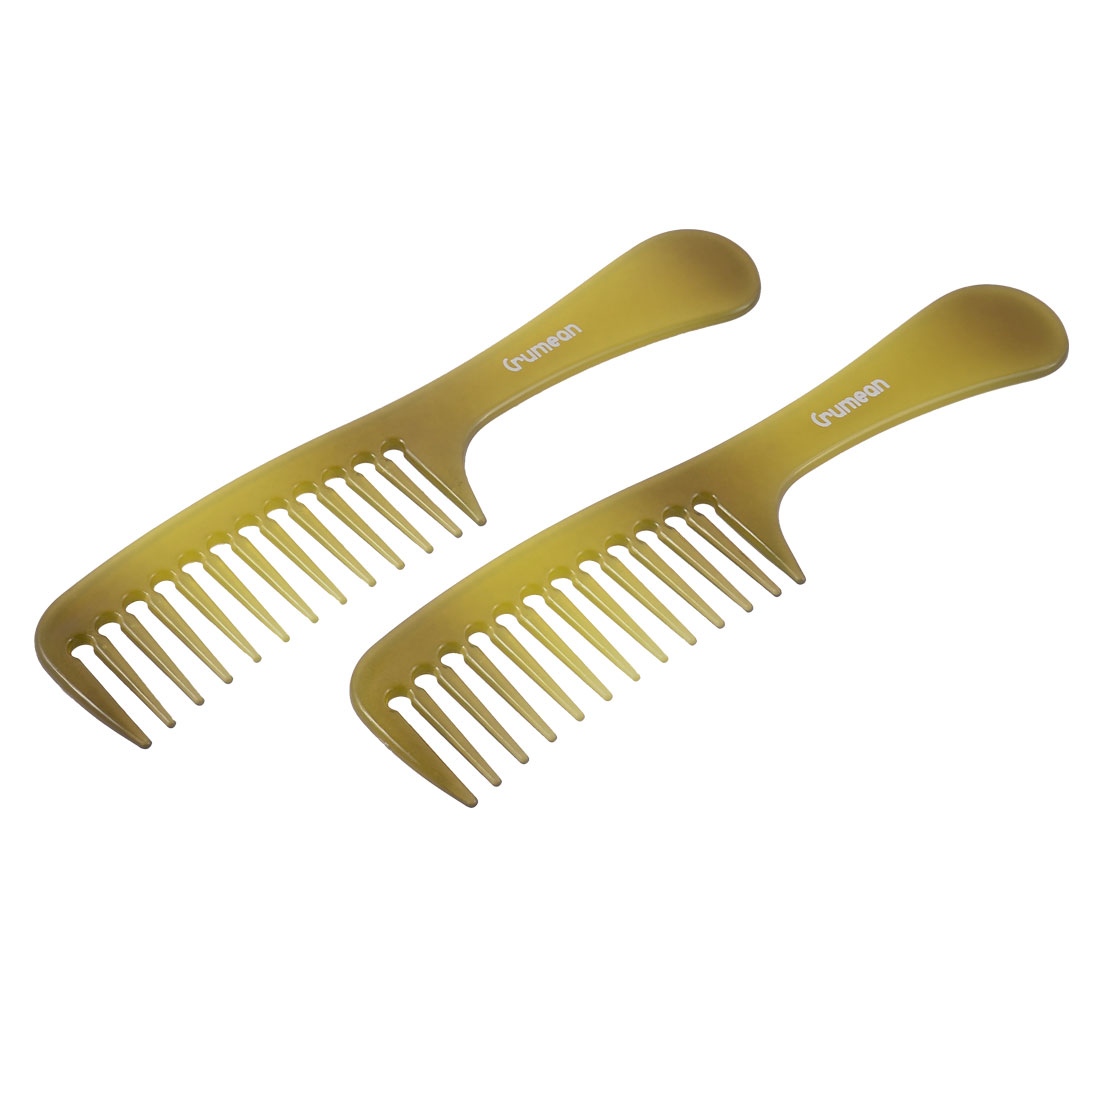 Home Barber Shop Hairdressing Plastic Anti-static Wide Teeth Hair Comb Brush 2pcs